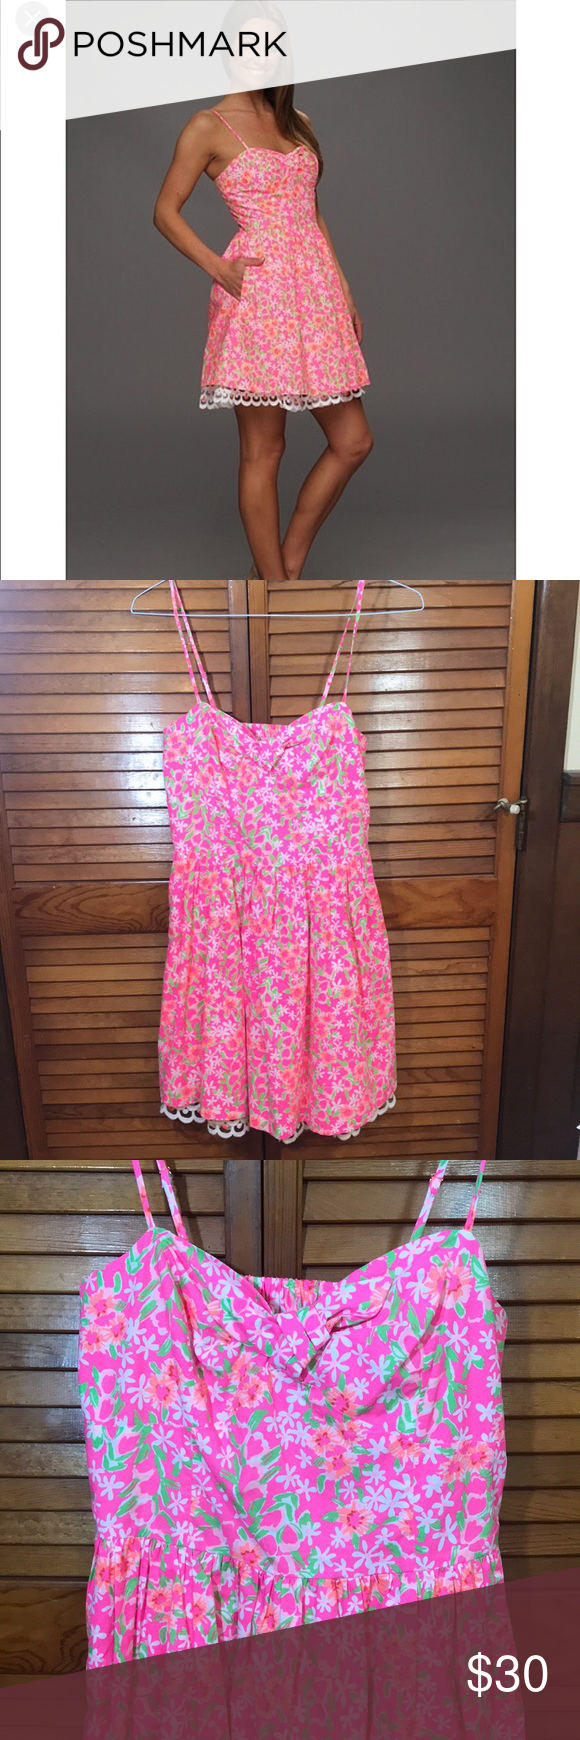 Lilly Pulitzer Macually dress in fiesta pink 8 Lilly Pulitzer ...